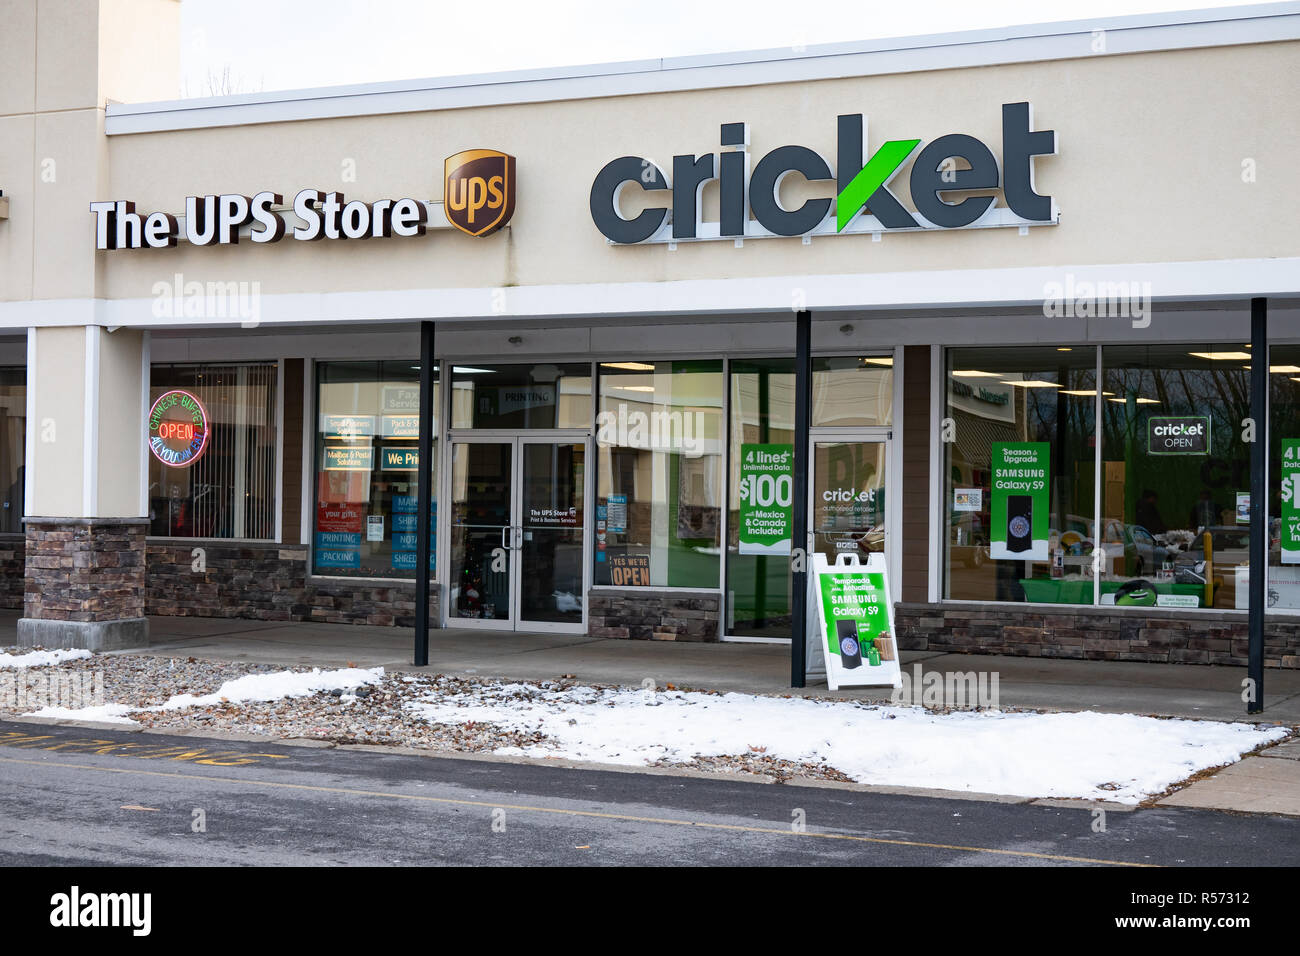 A UPS Store and a cricket wireless phone store in a strip